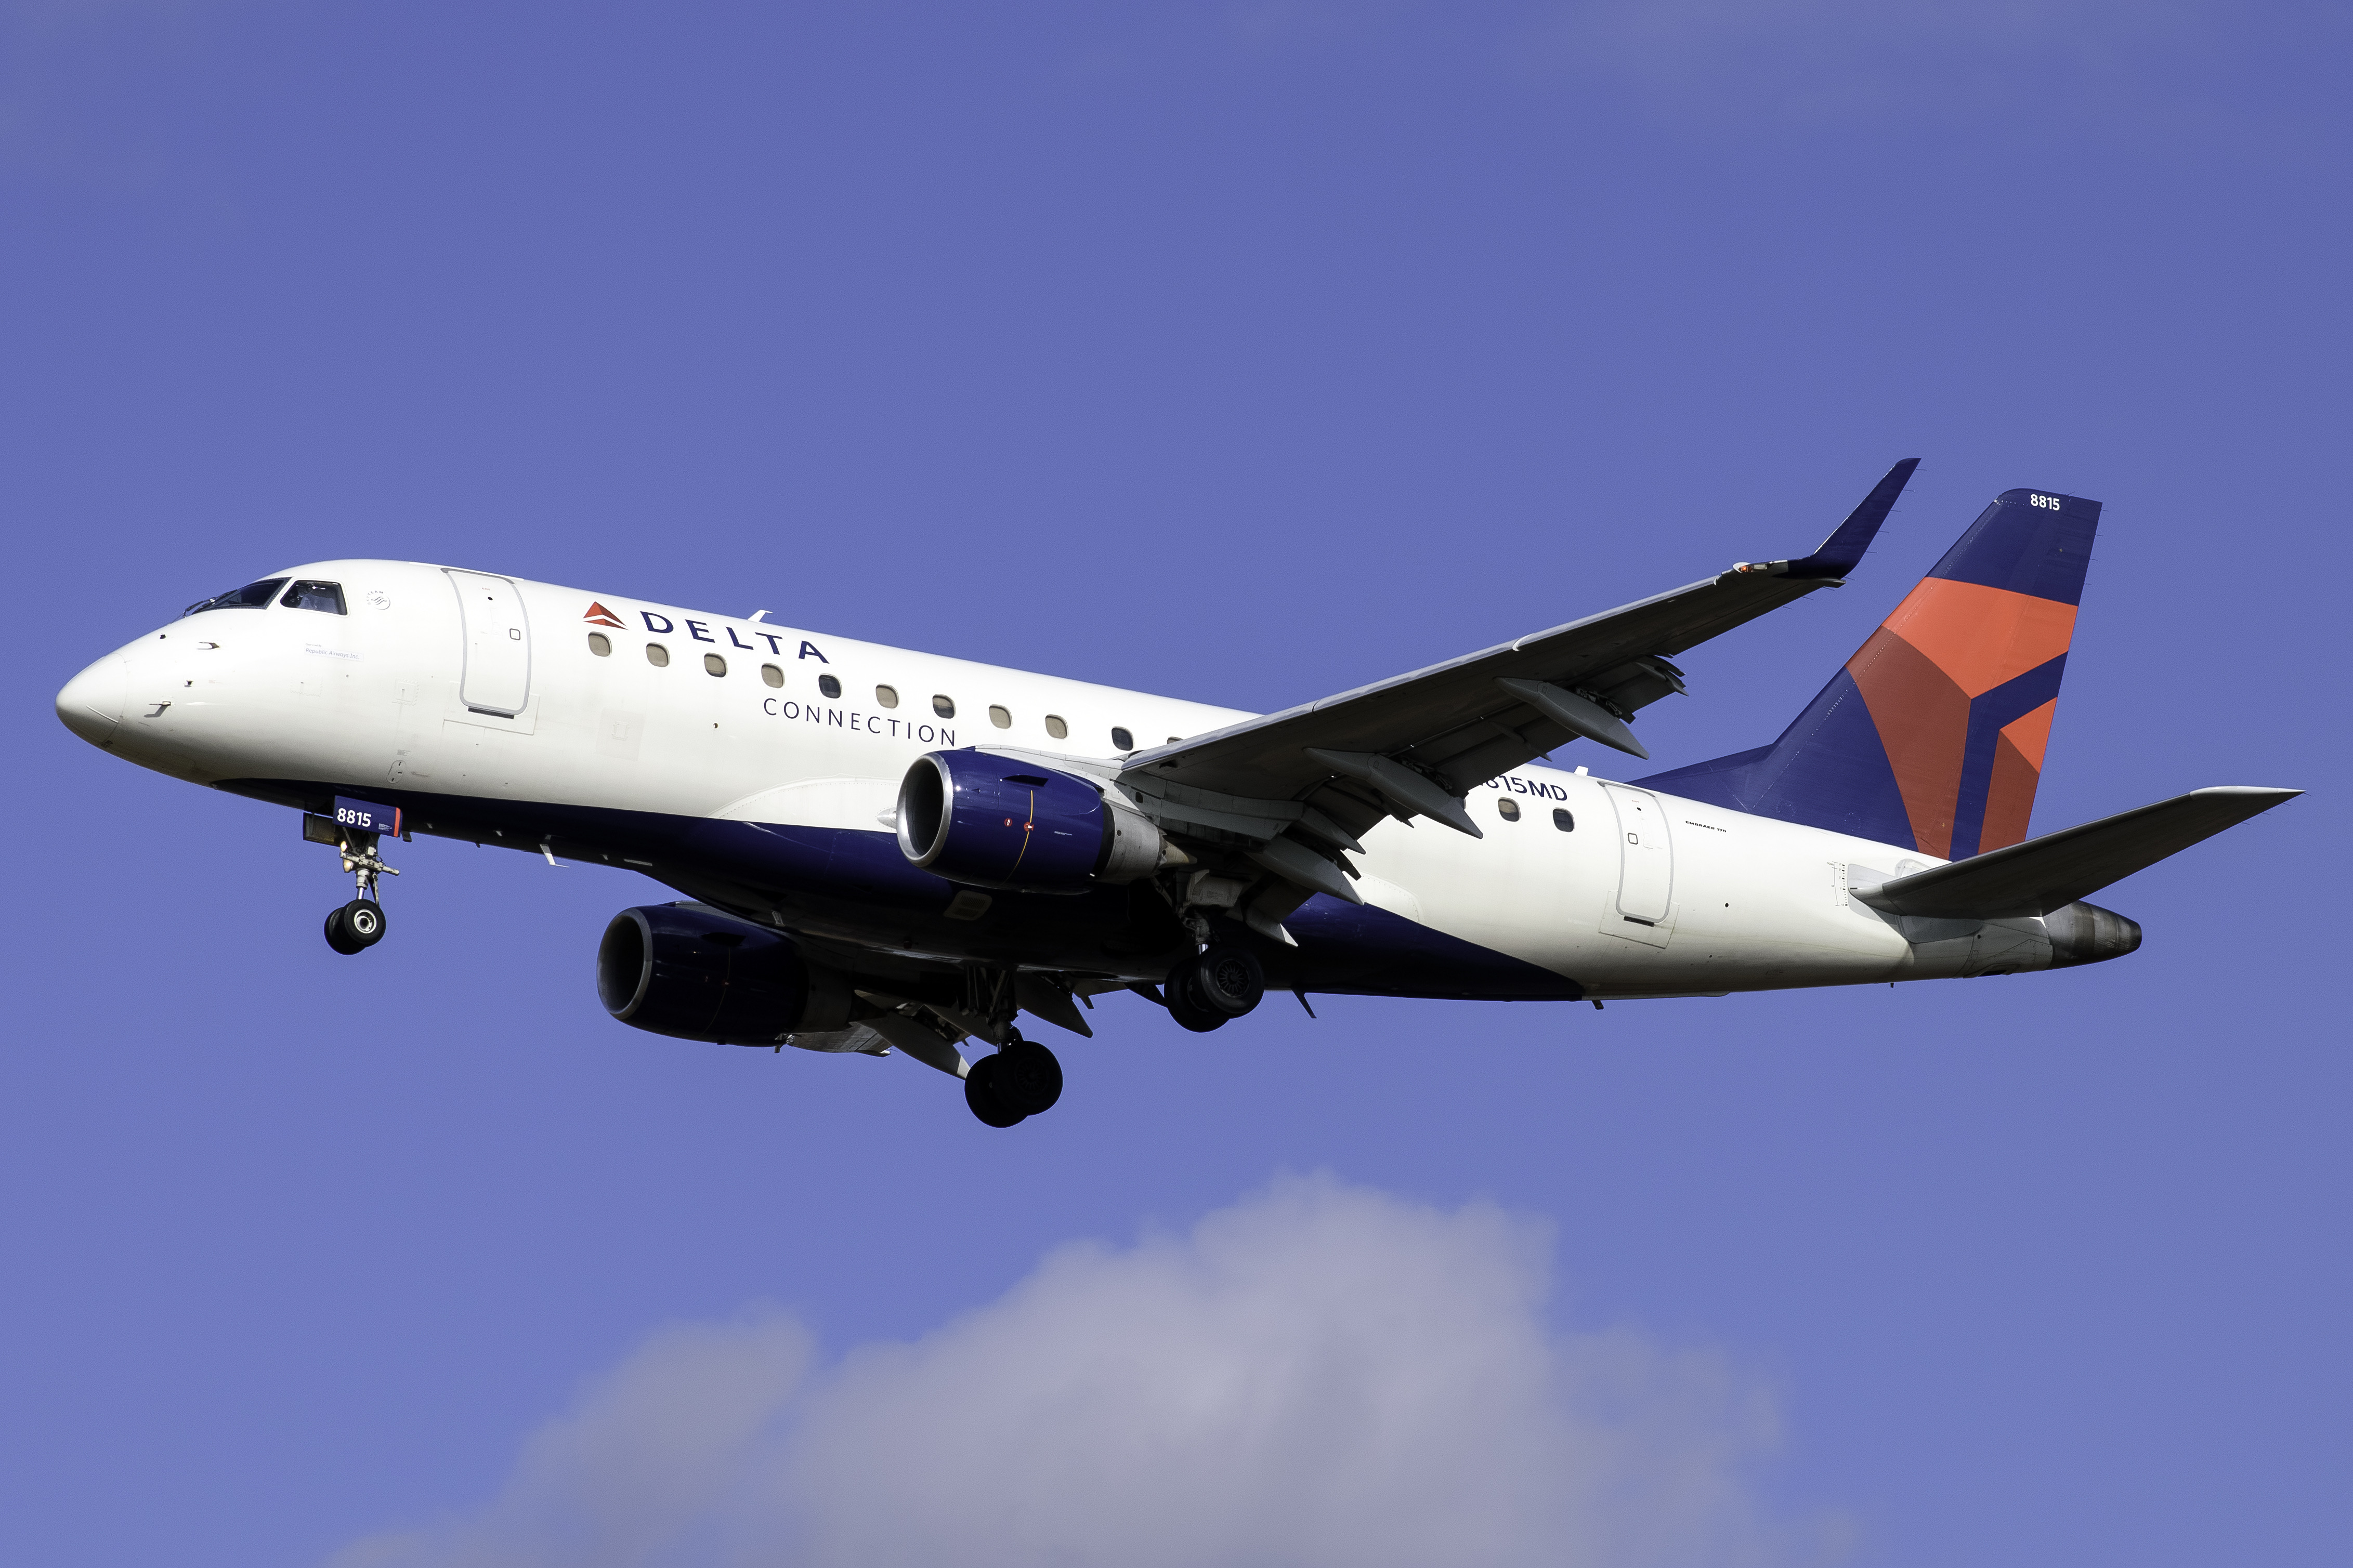 Photo of N815MD - Delta Connection Embraer E170 at PHL